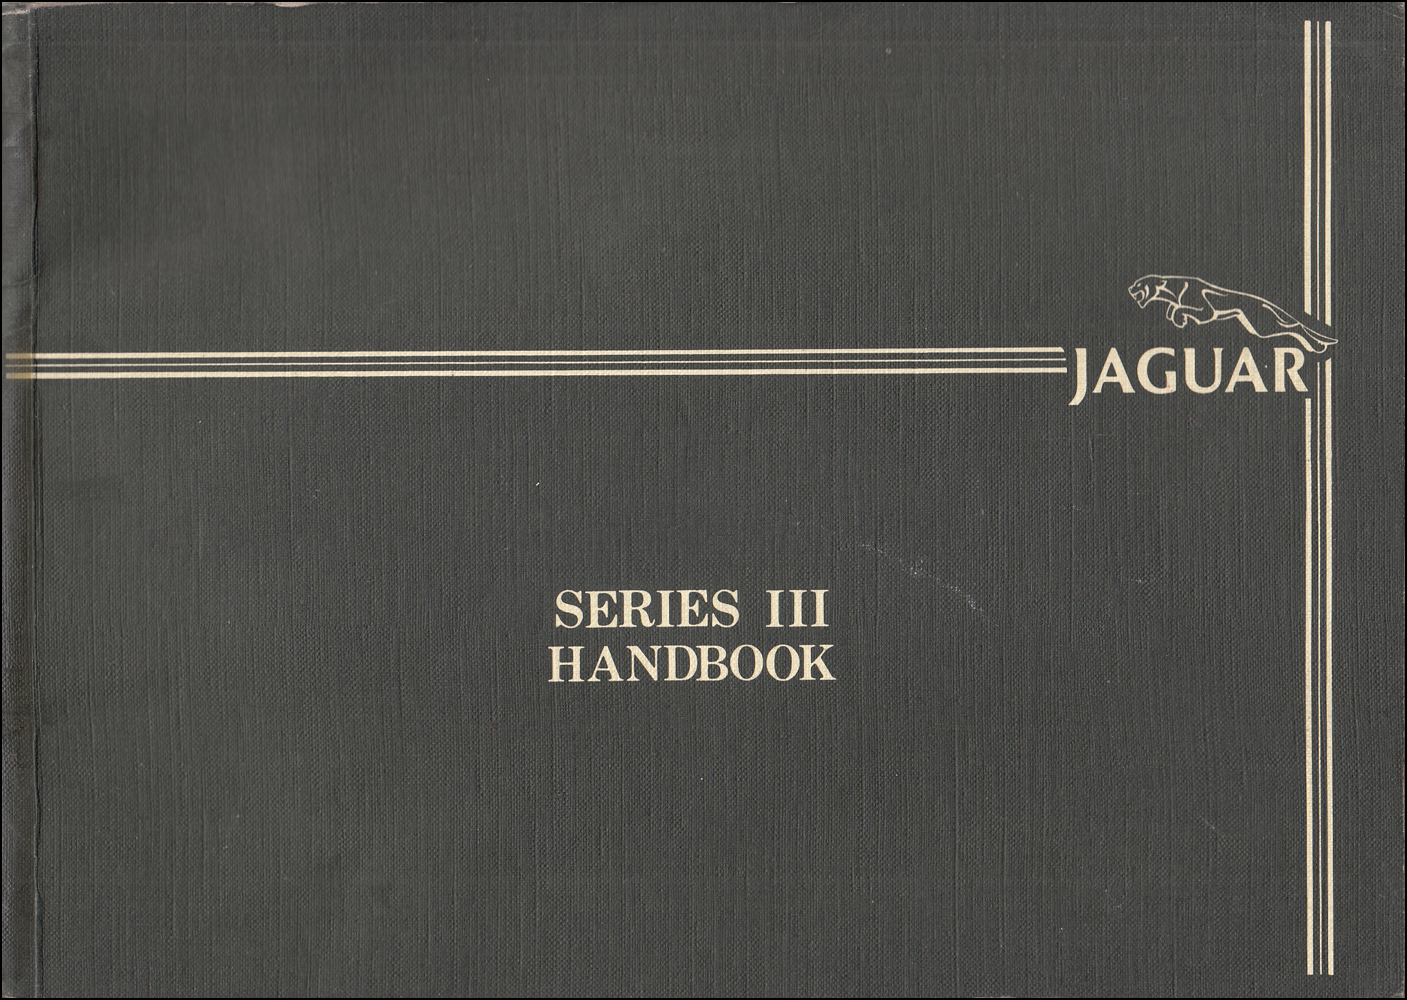 1984-1985 Jaguar XJ6 Owner's Manual Original